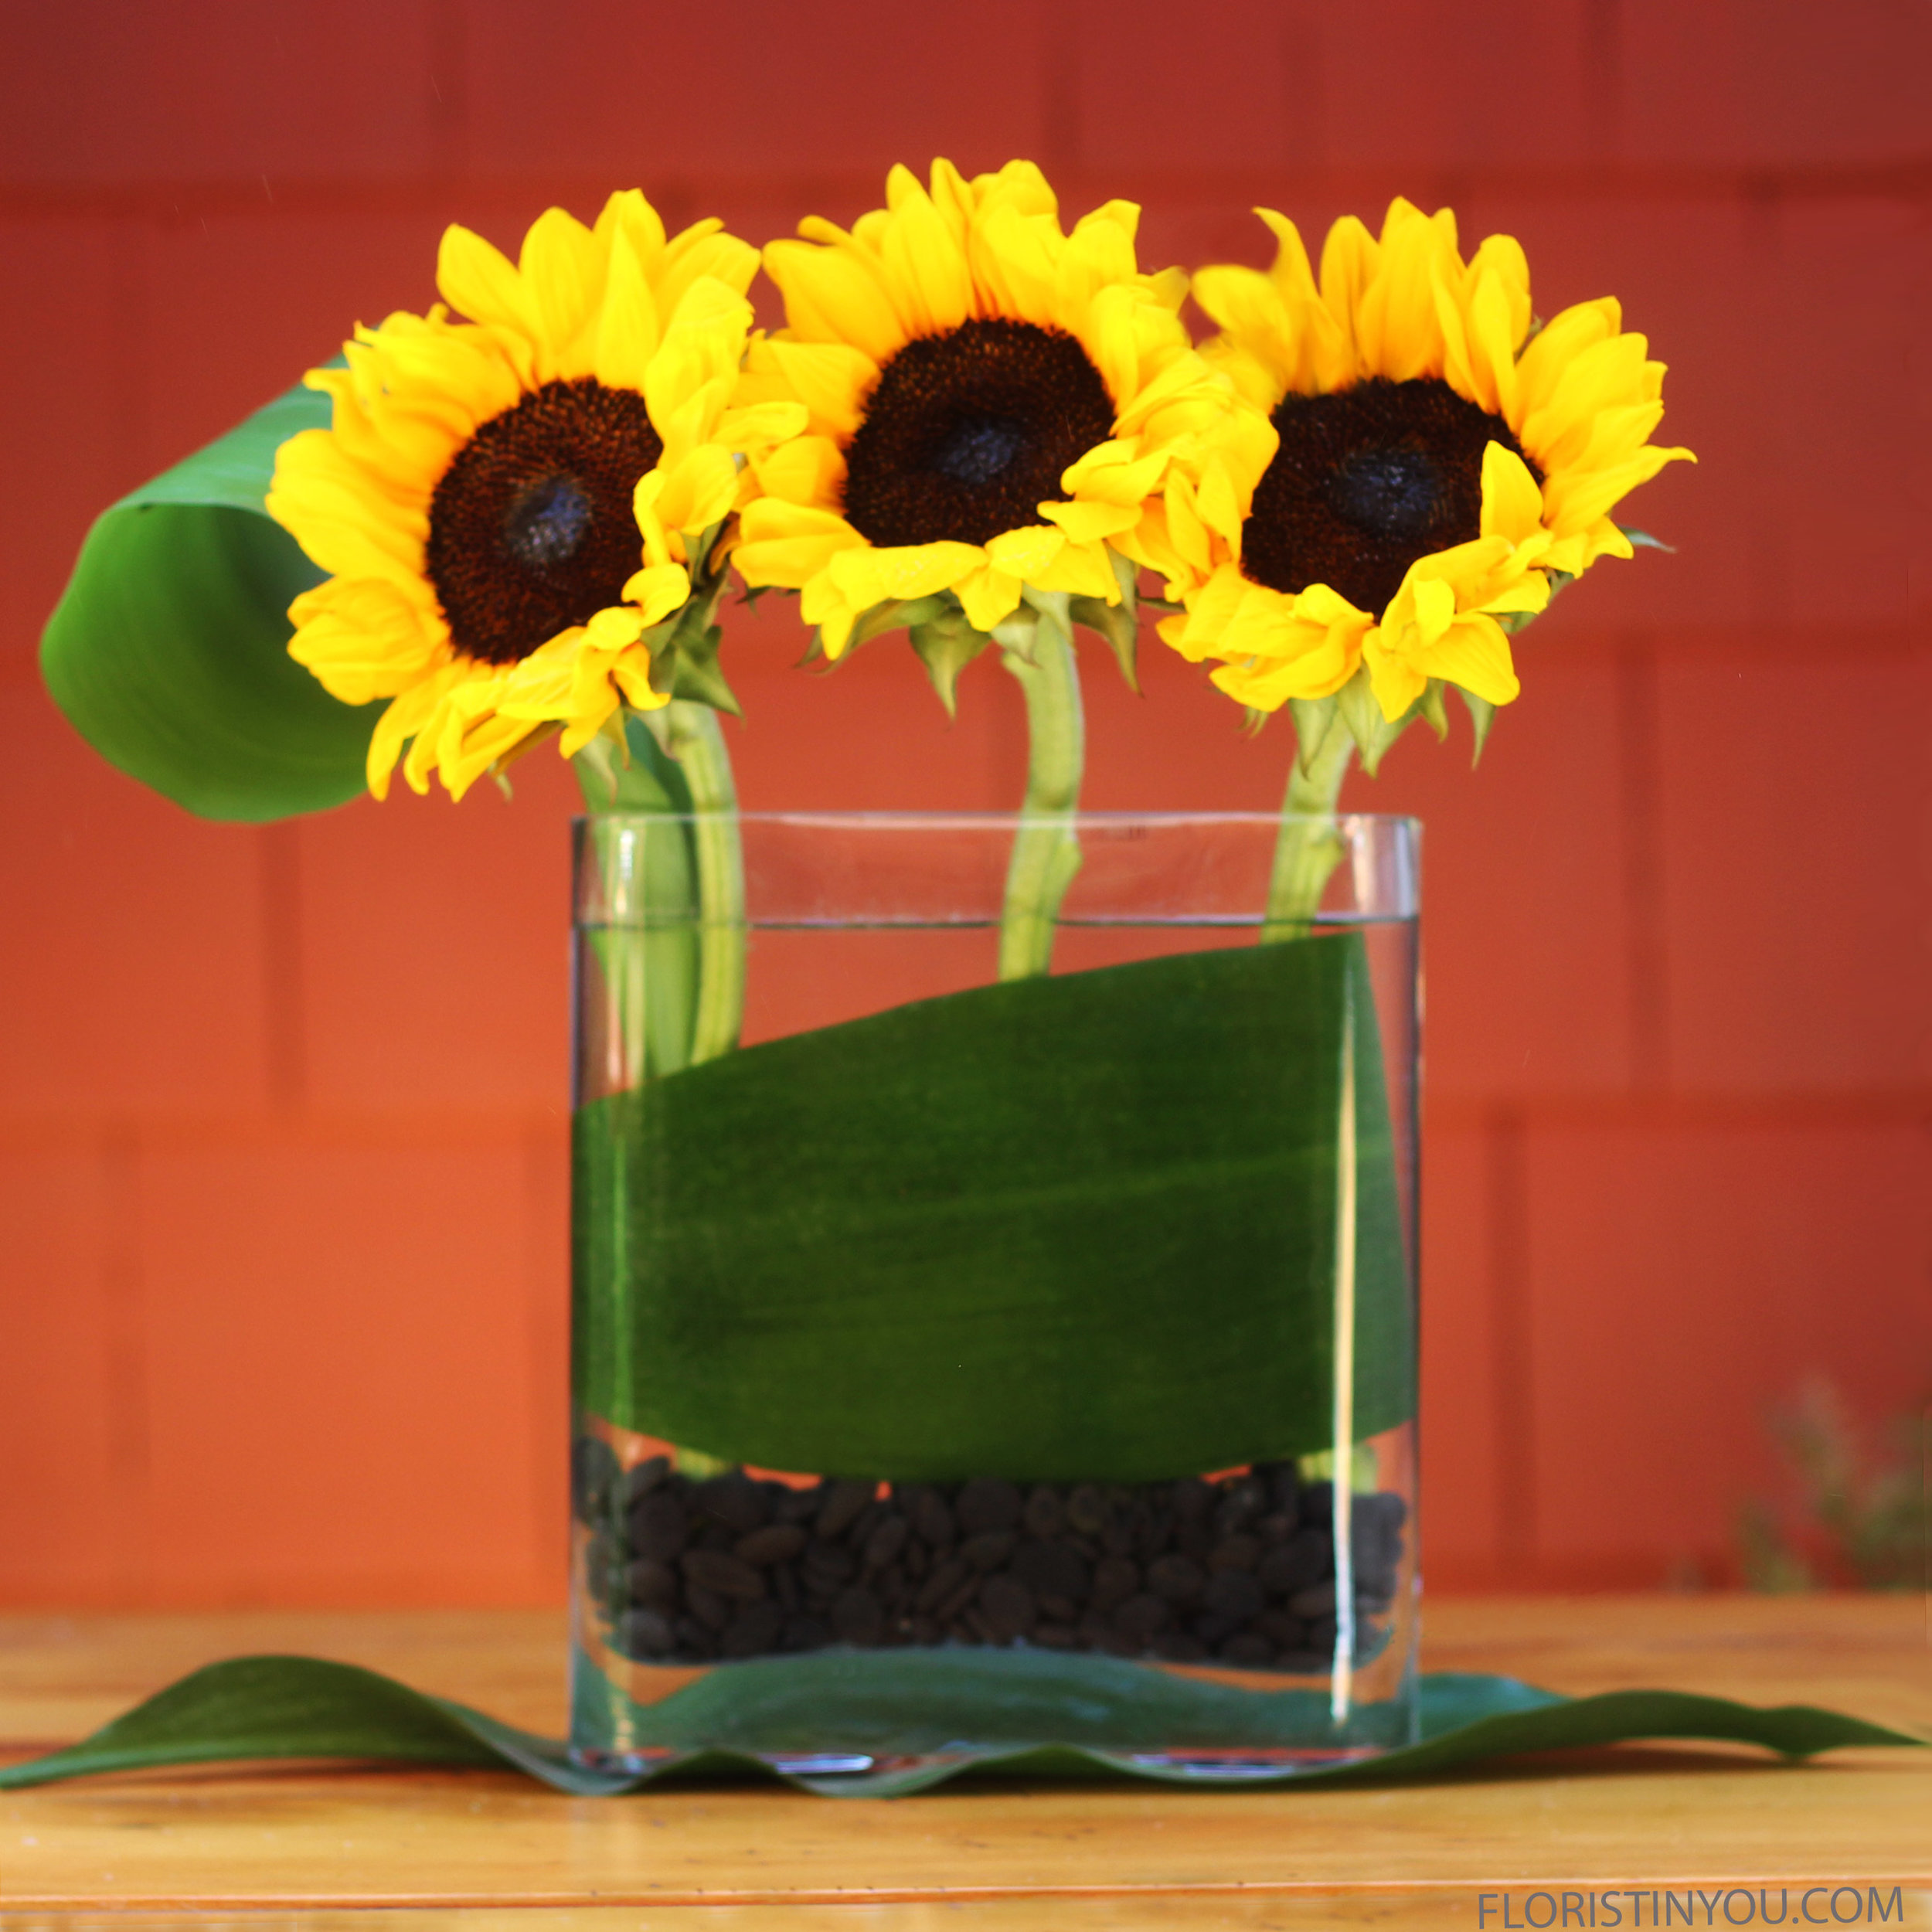 Sunflowers in a Rounded Edge Vase